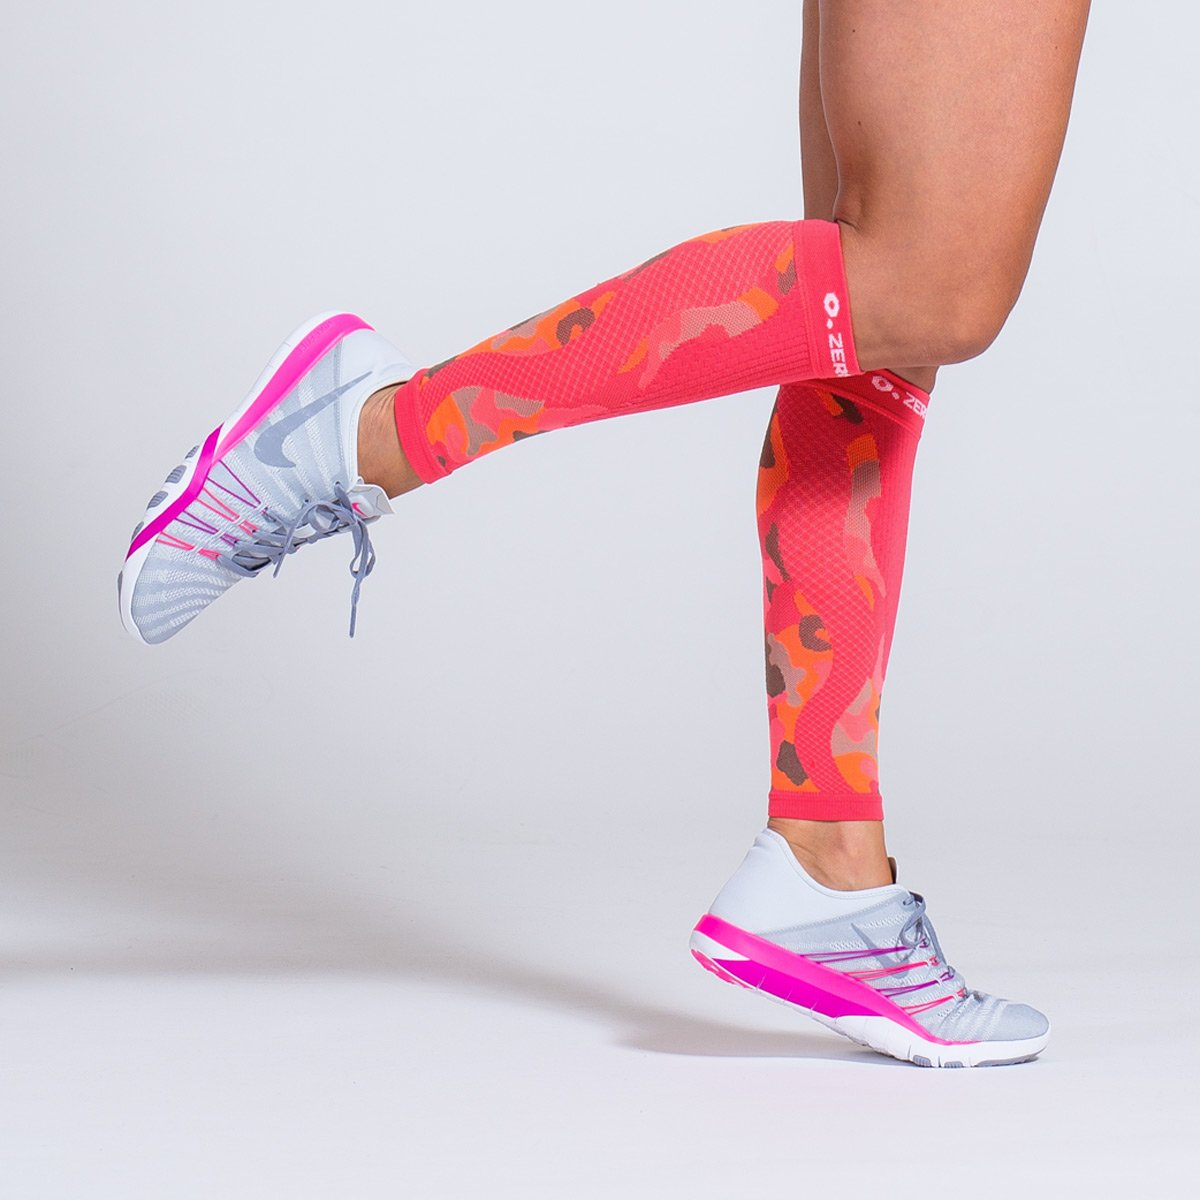 A Look at the Difference Between Compression Socks and Sleeves